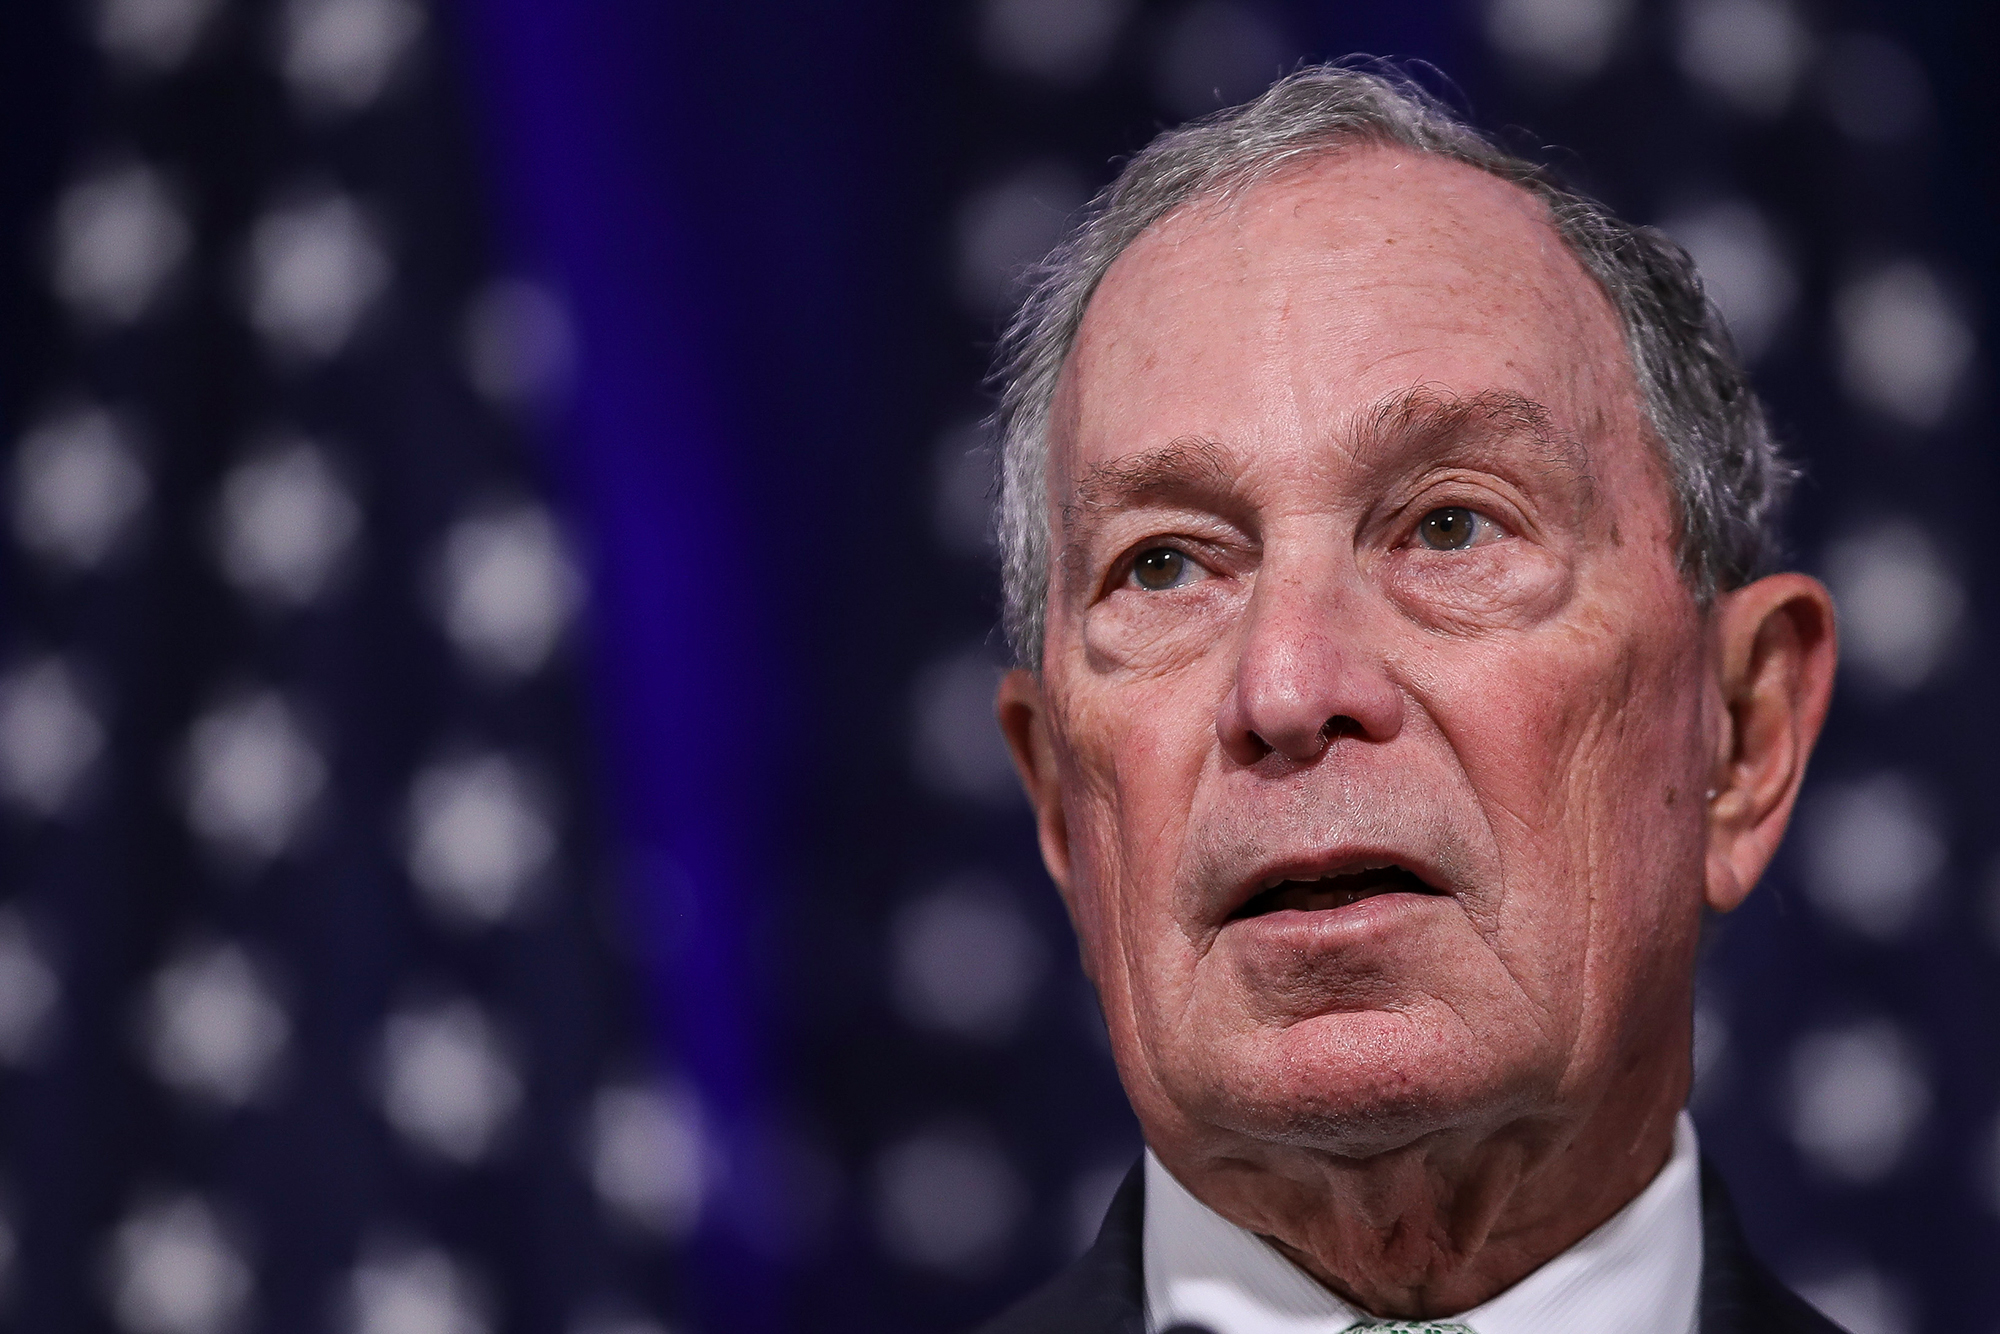 Michael Bloomberg releases letter from doctor that says he is in 'outstanding health'